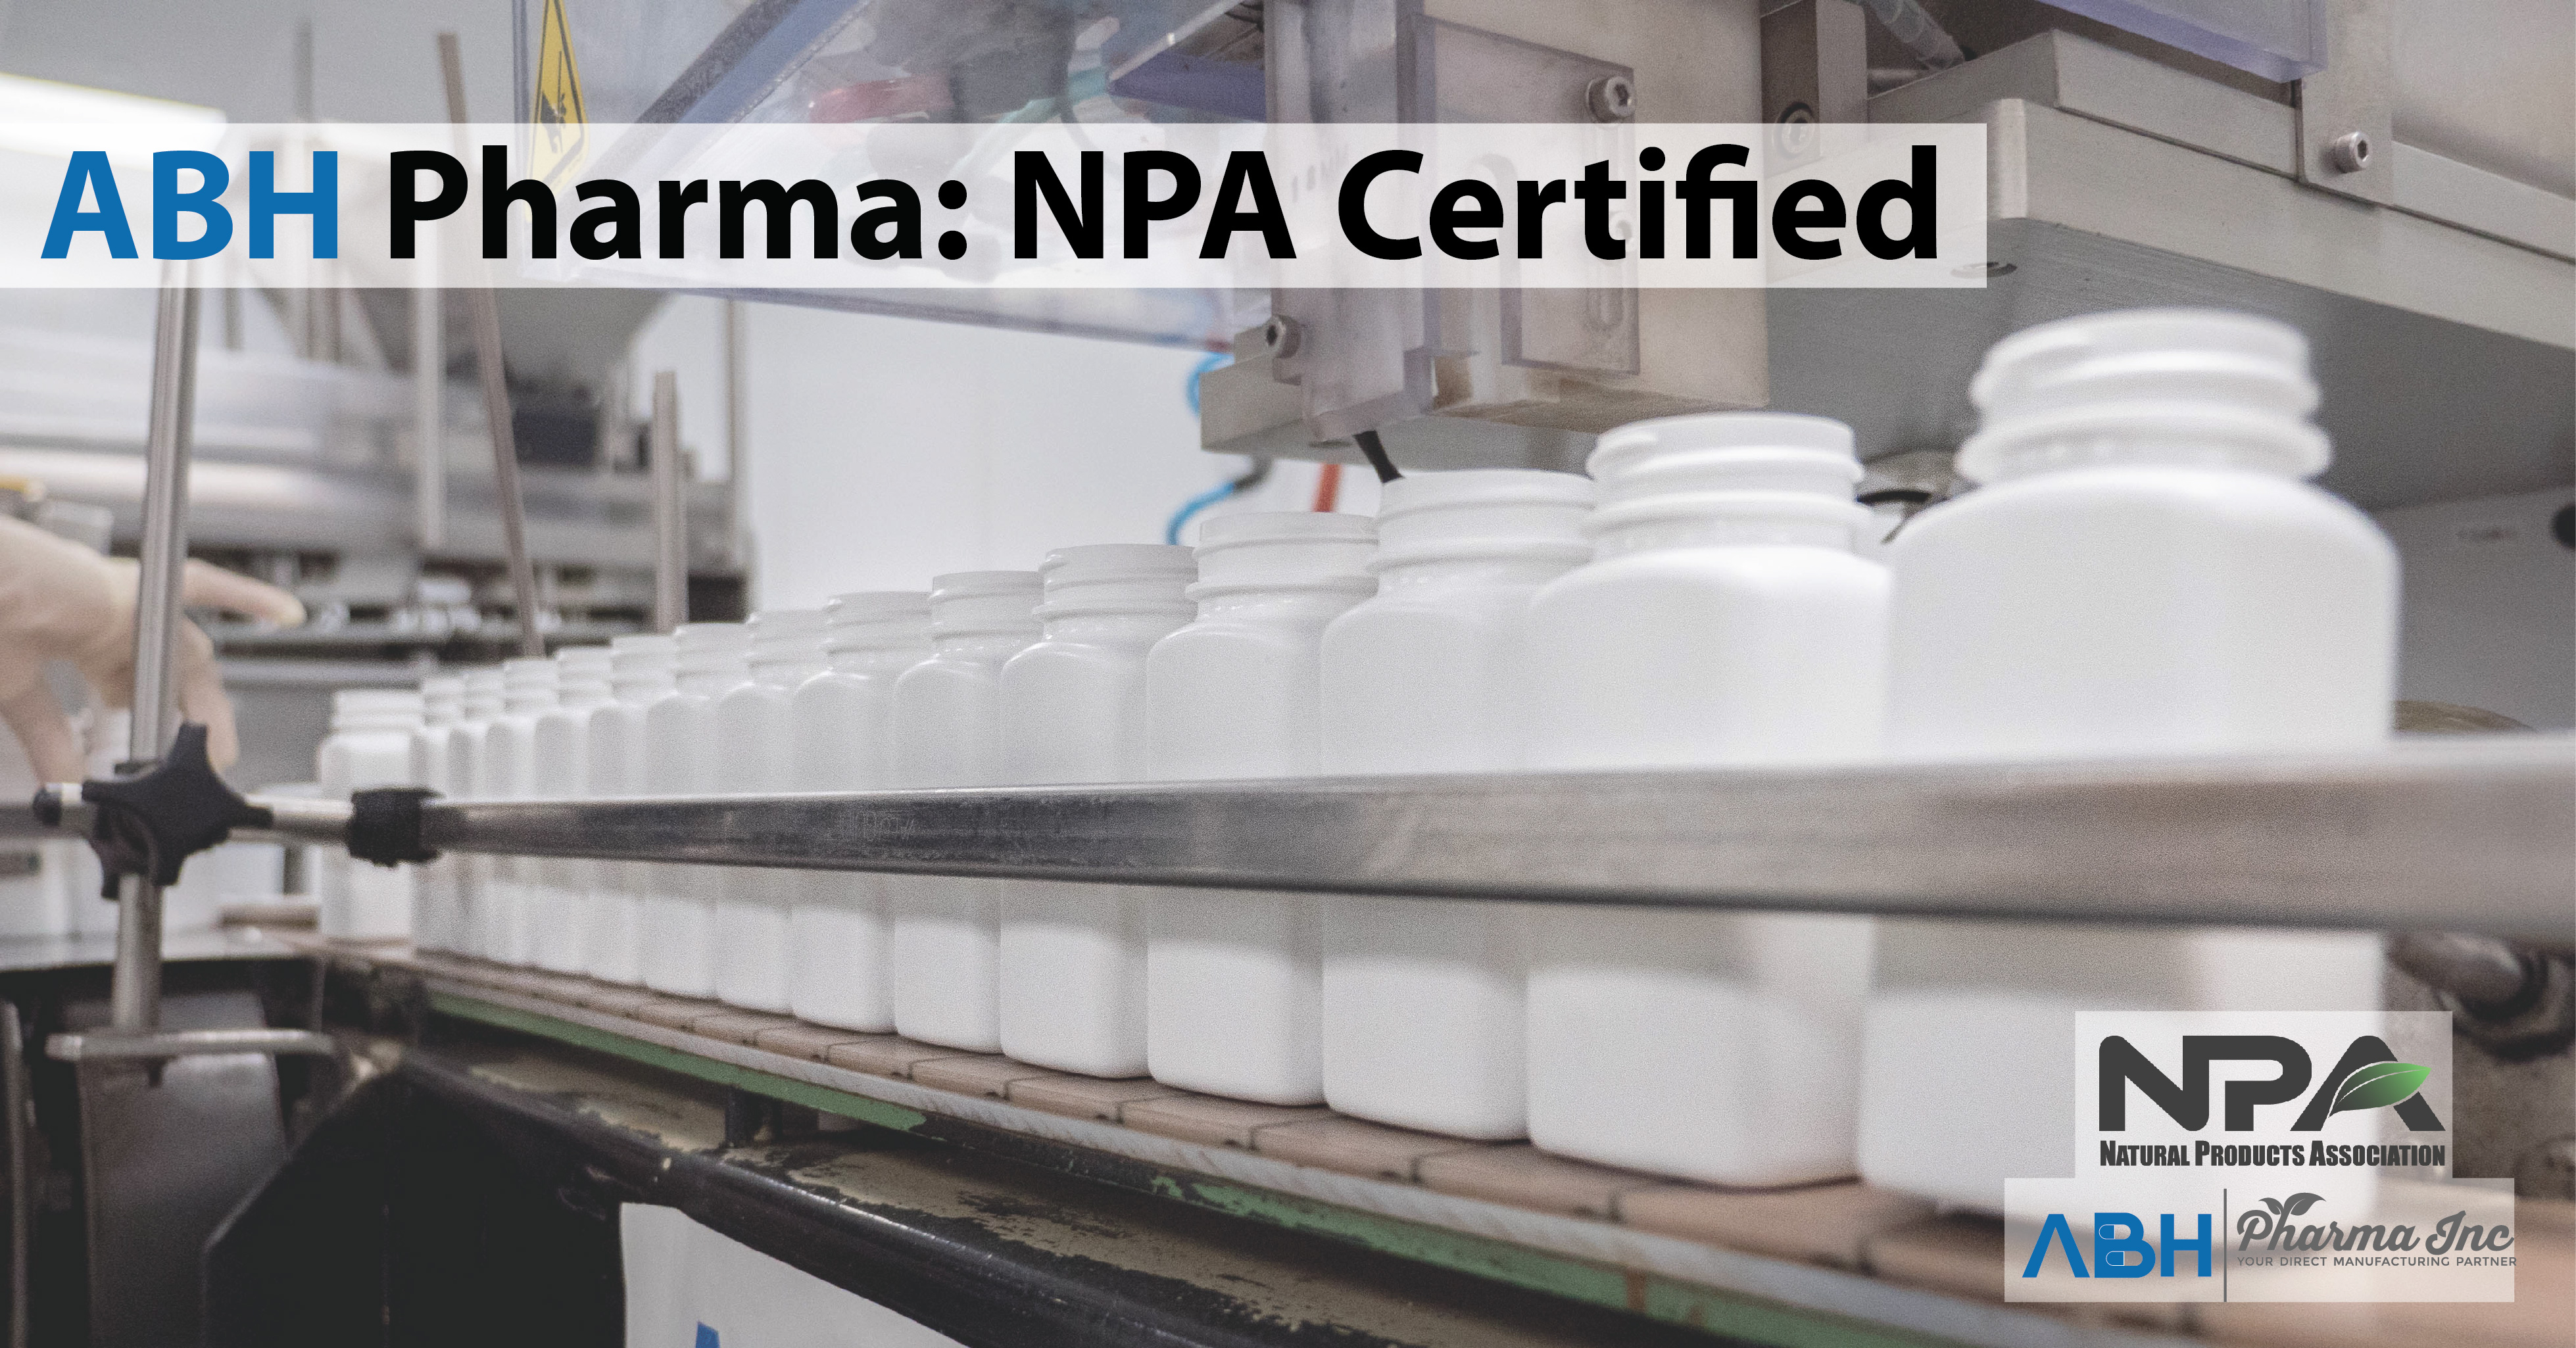 ABH Pharma Nutraceutical Contract Manufacturer Awarded NPA